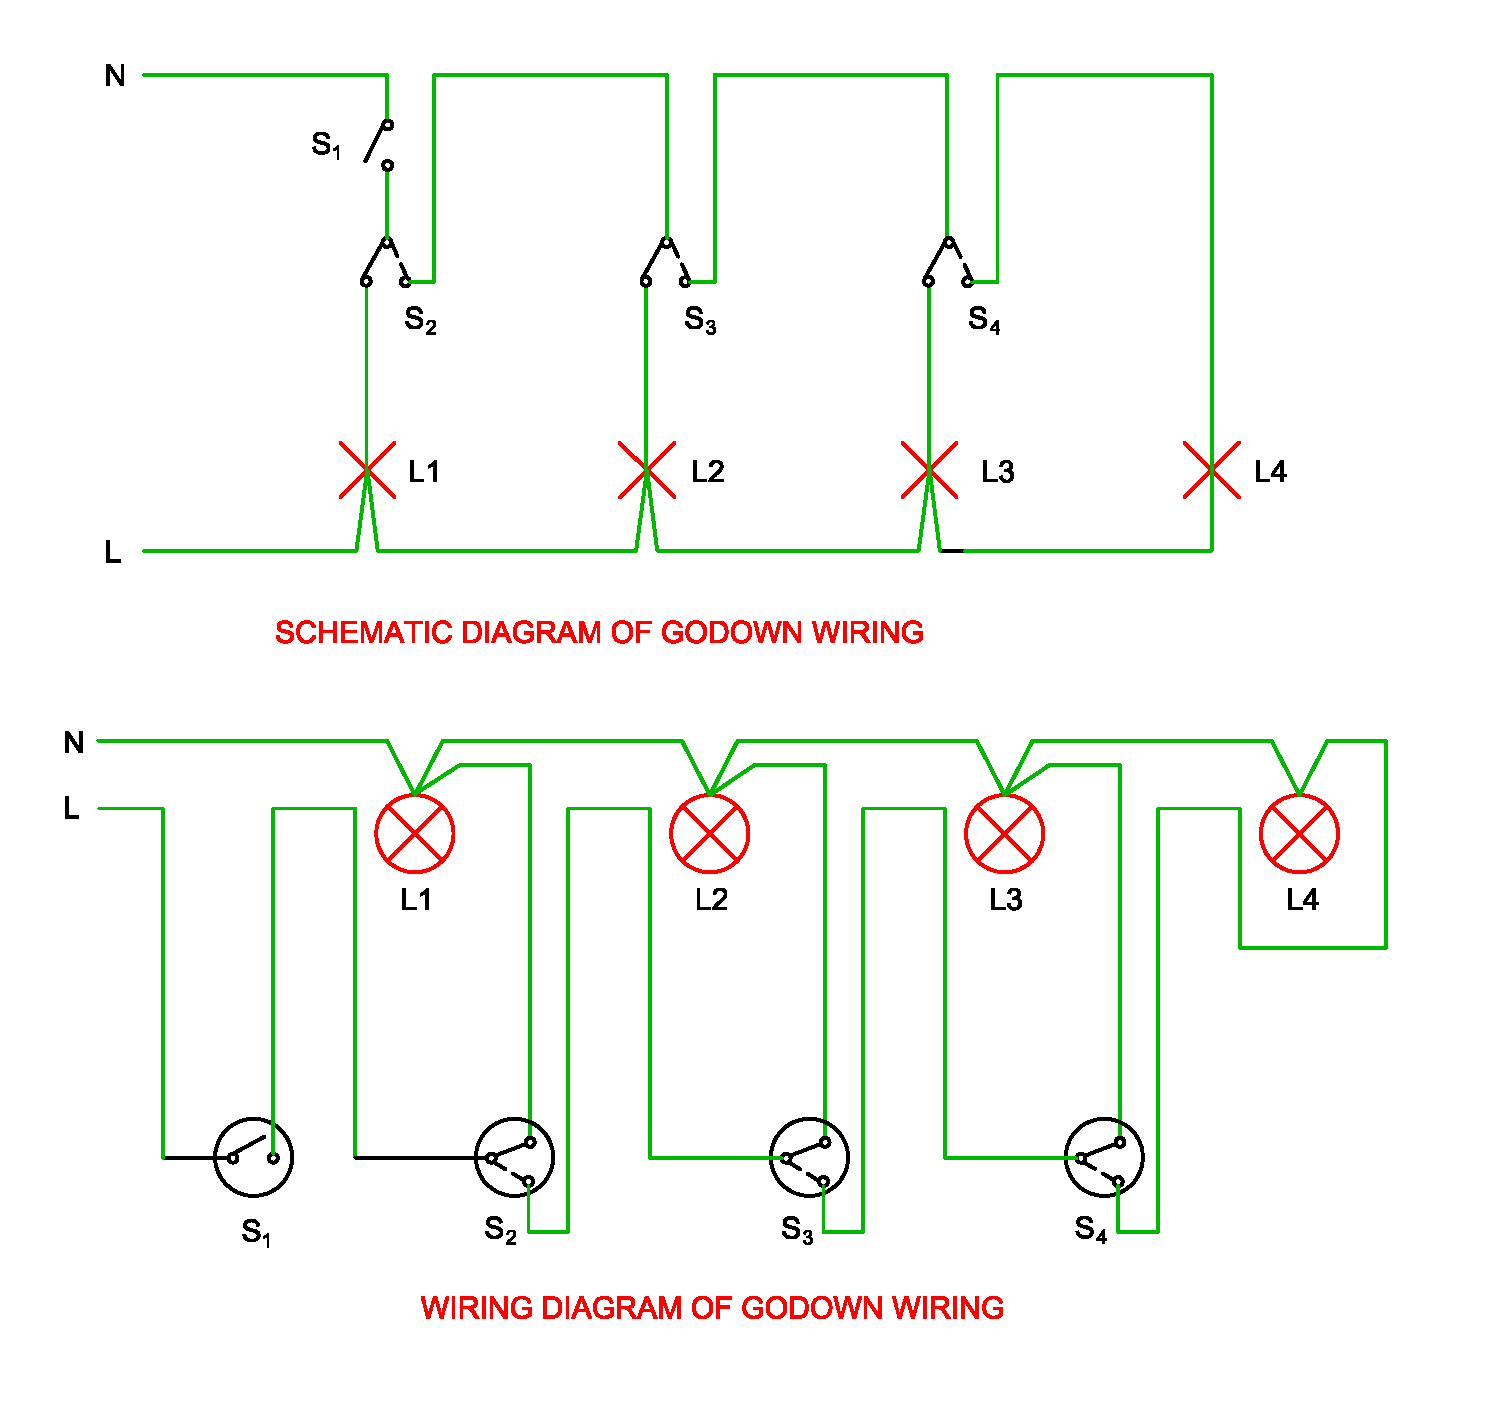 hight resolution of schematic and wiring diagram of go down wiring